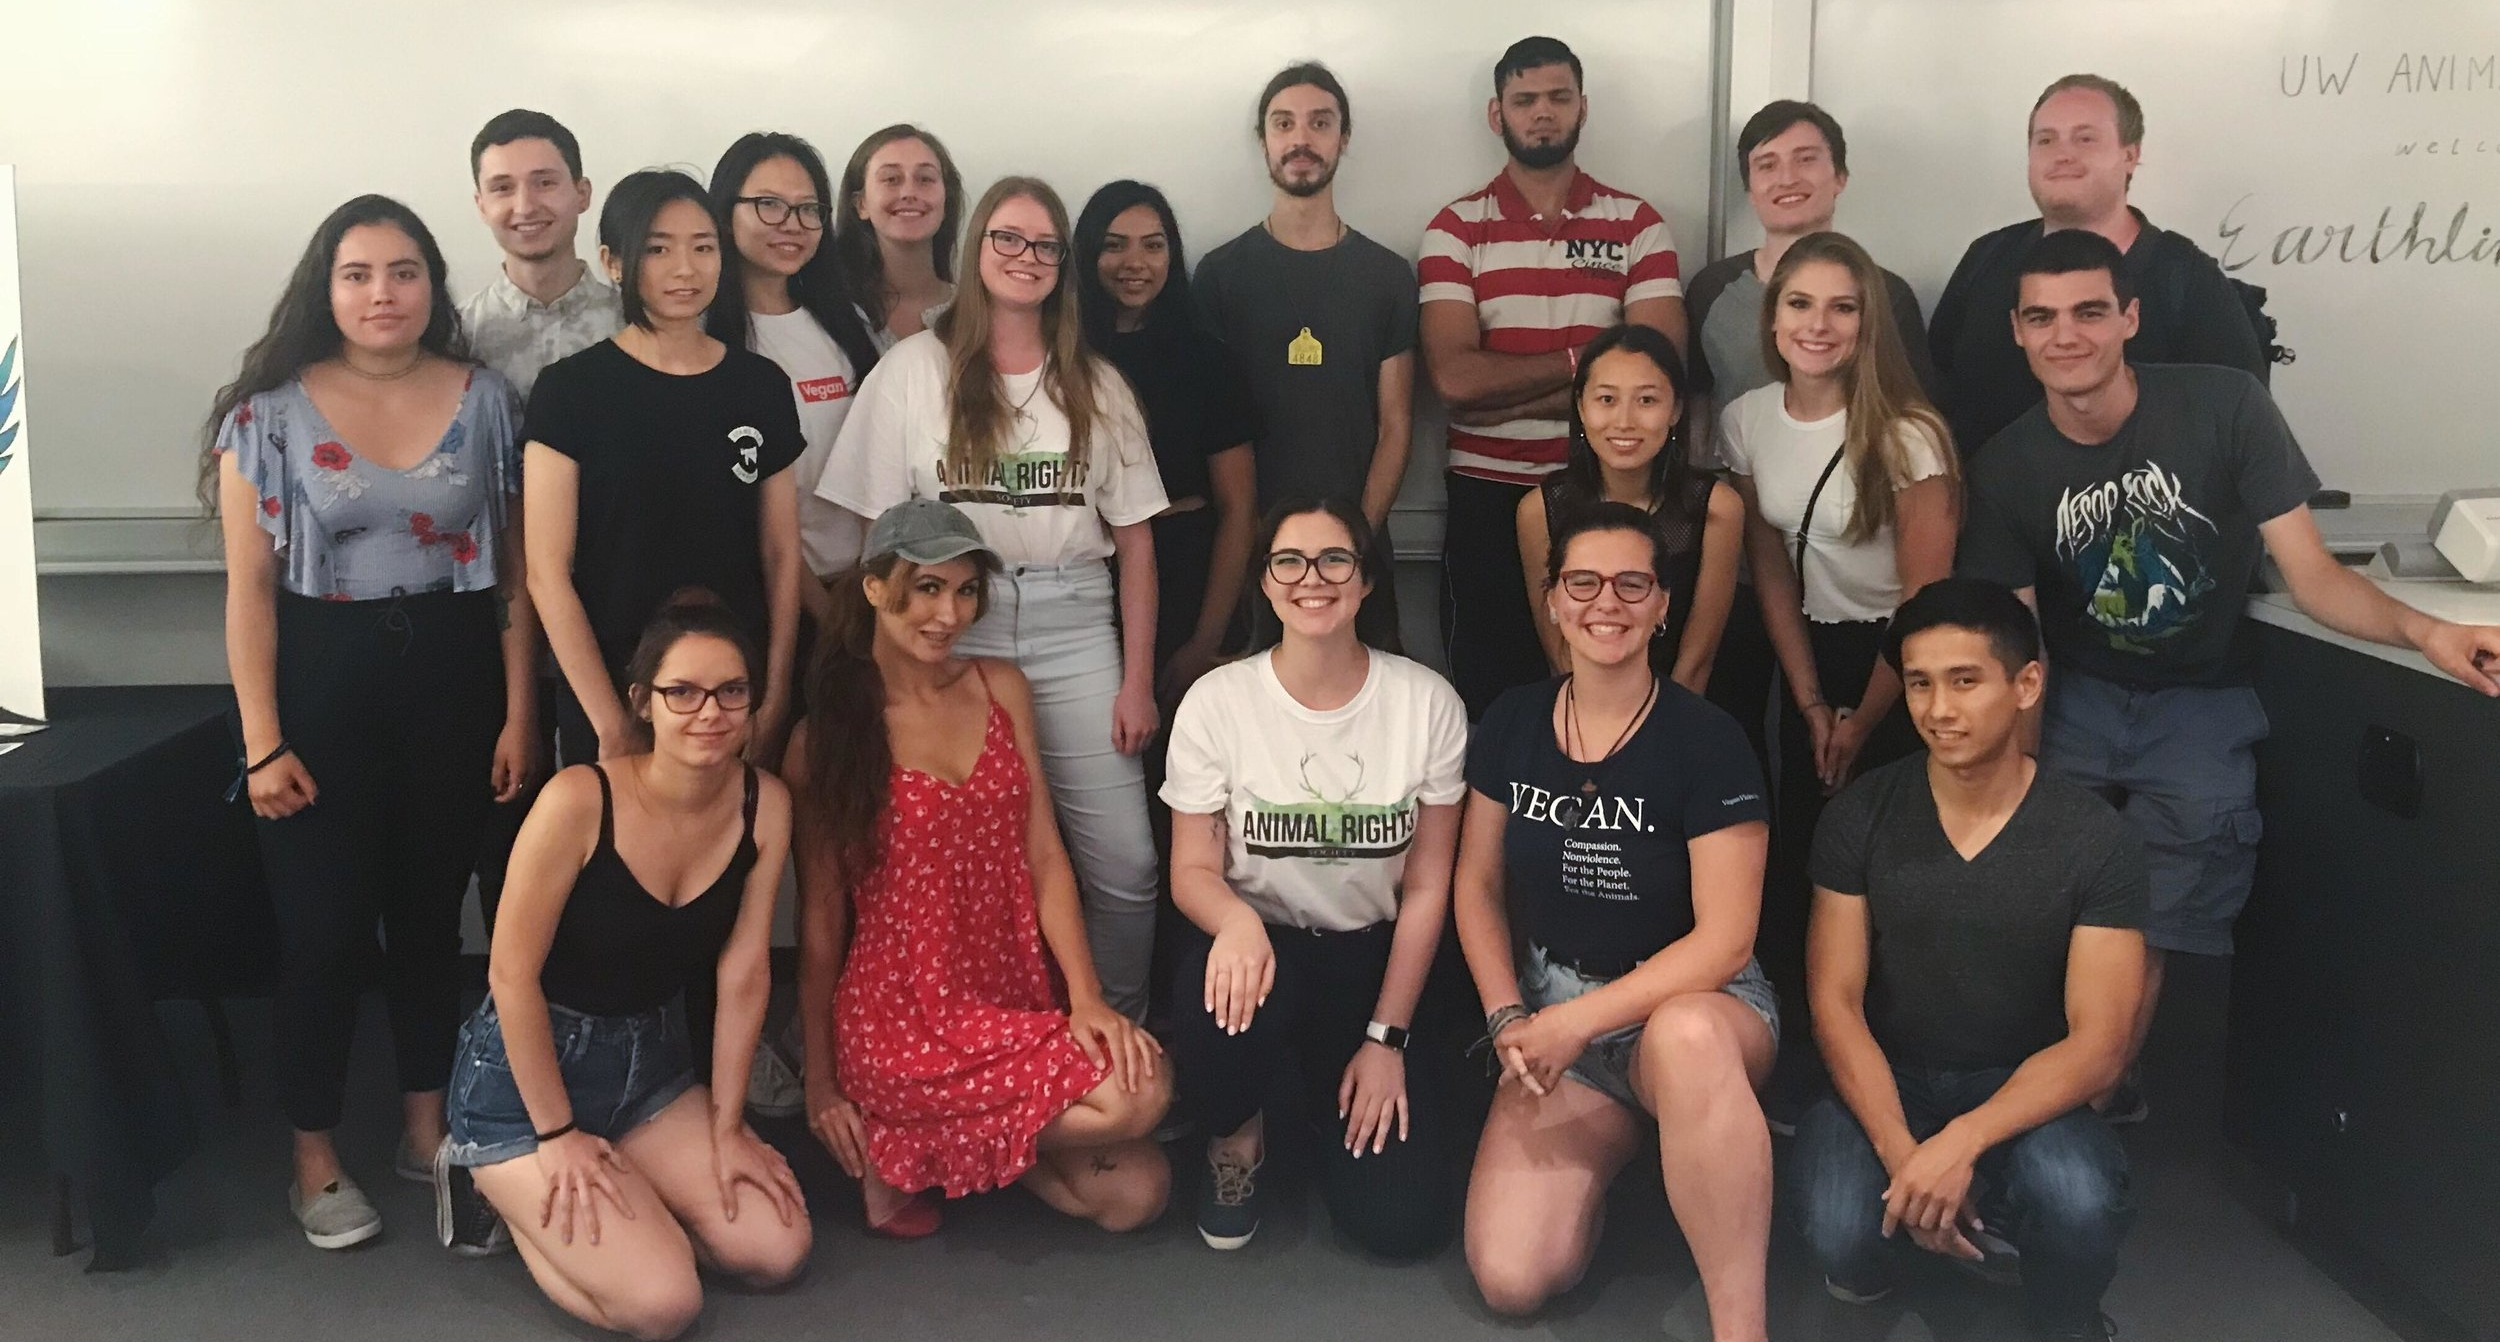 UW Animal rights Society with Earthling Ed at the University of Waterloo on Thursday, July 5, 2018.